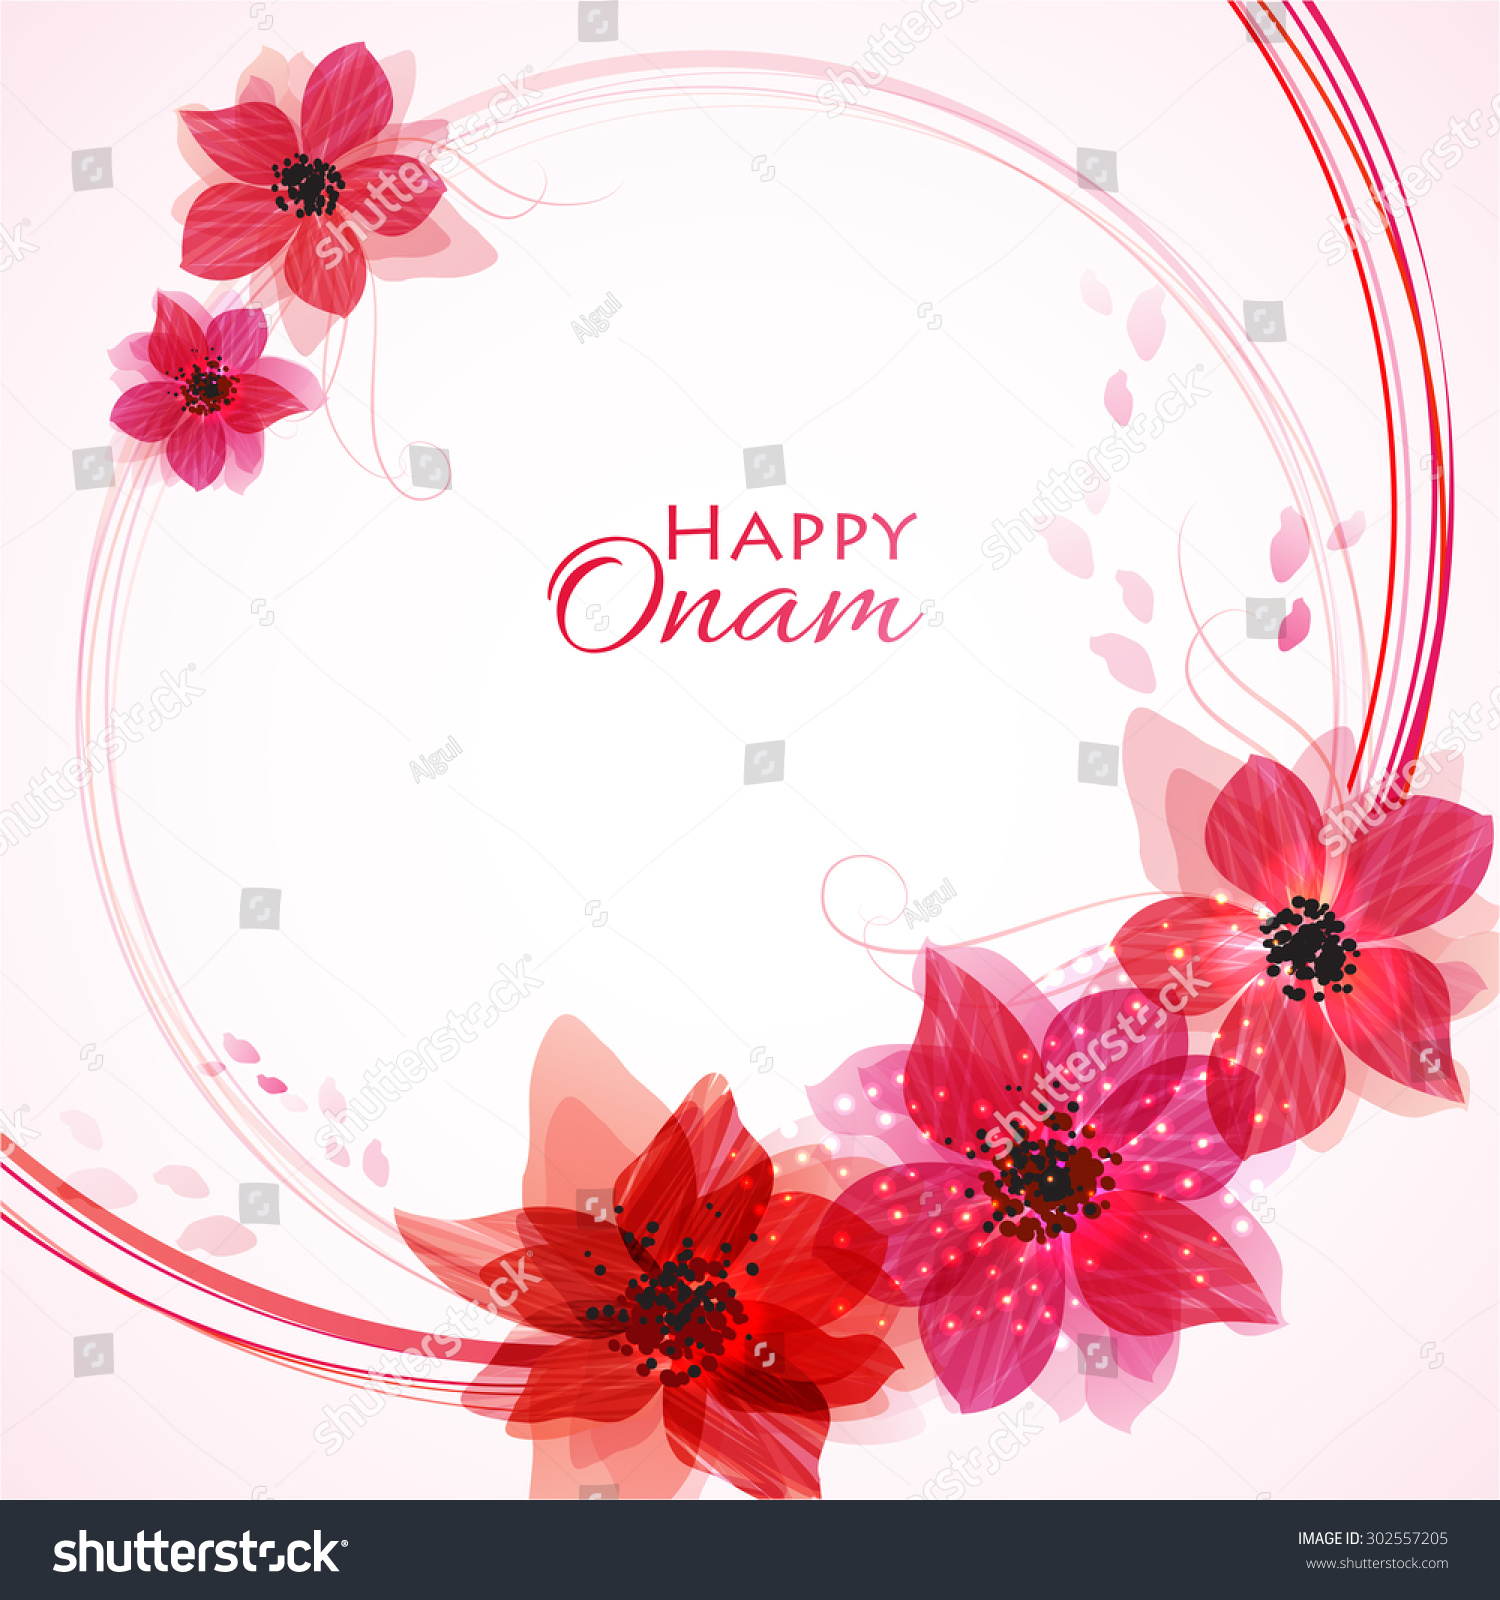 Happy Onam Flower Greetings South Indian Stock Vector Royalty Free